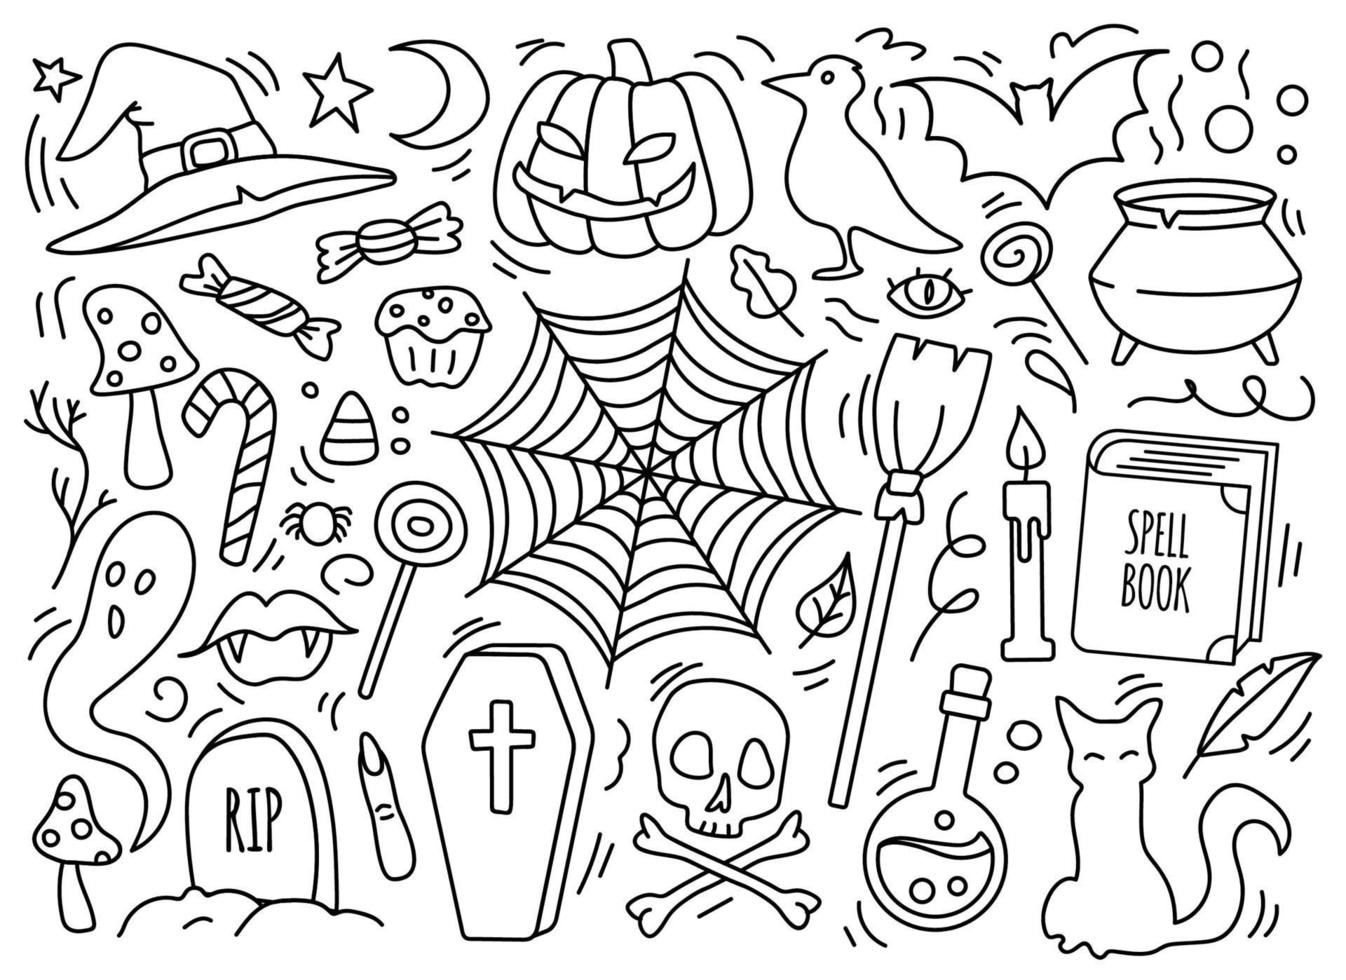 Hand drawn Halloween occult attributes icon set vector